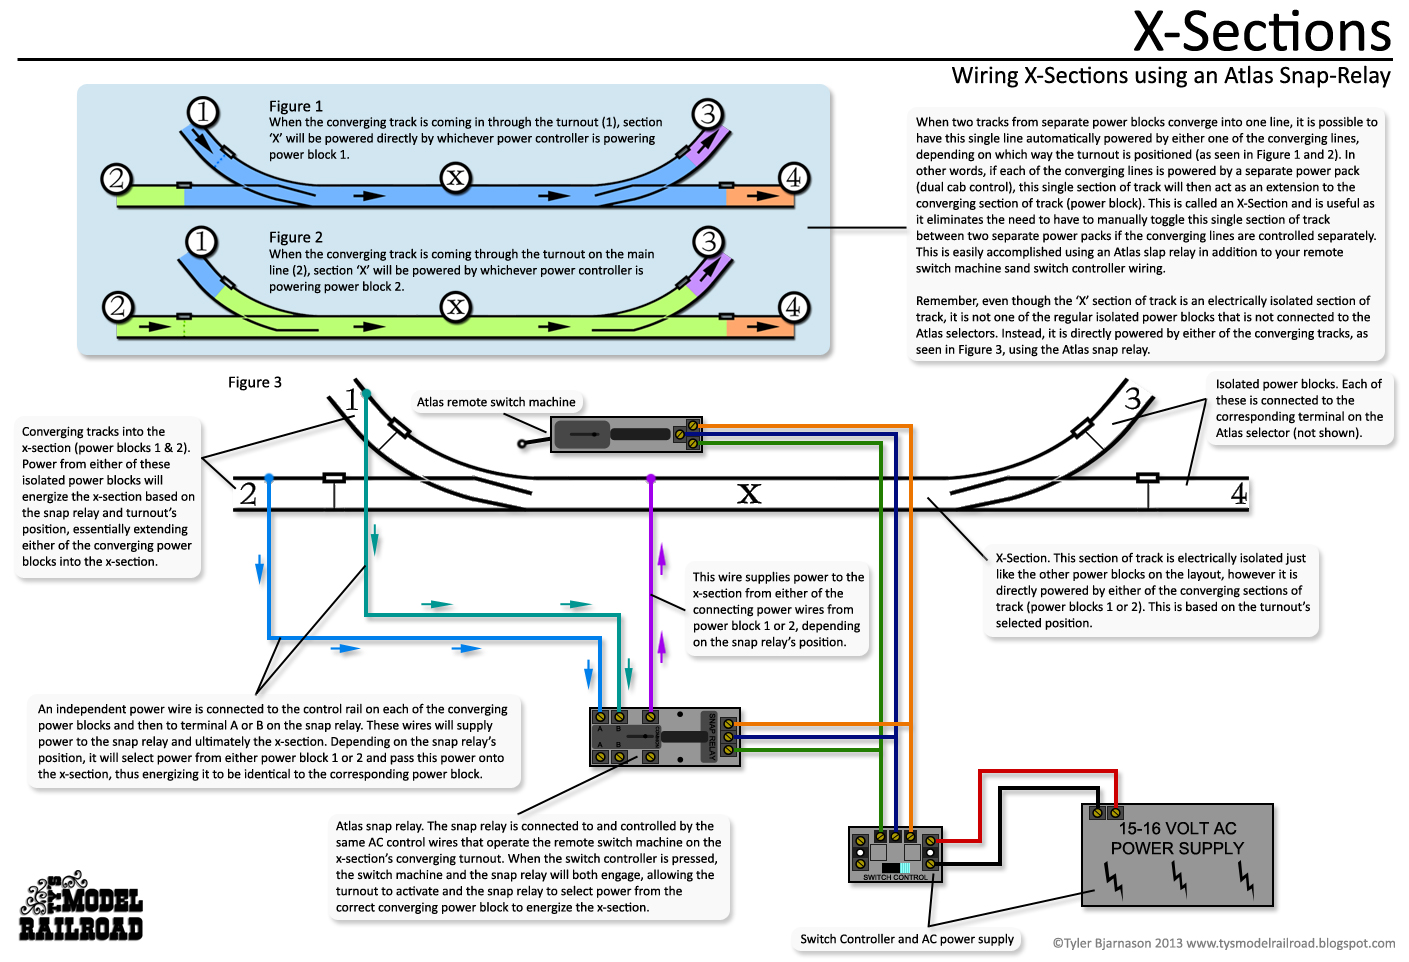 hight resolution of how to wire an x section using an atlas snap relay and existing remote switch